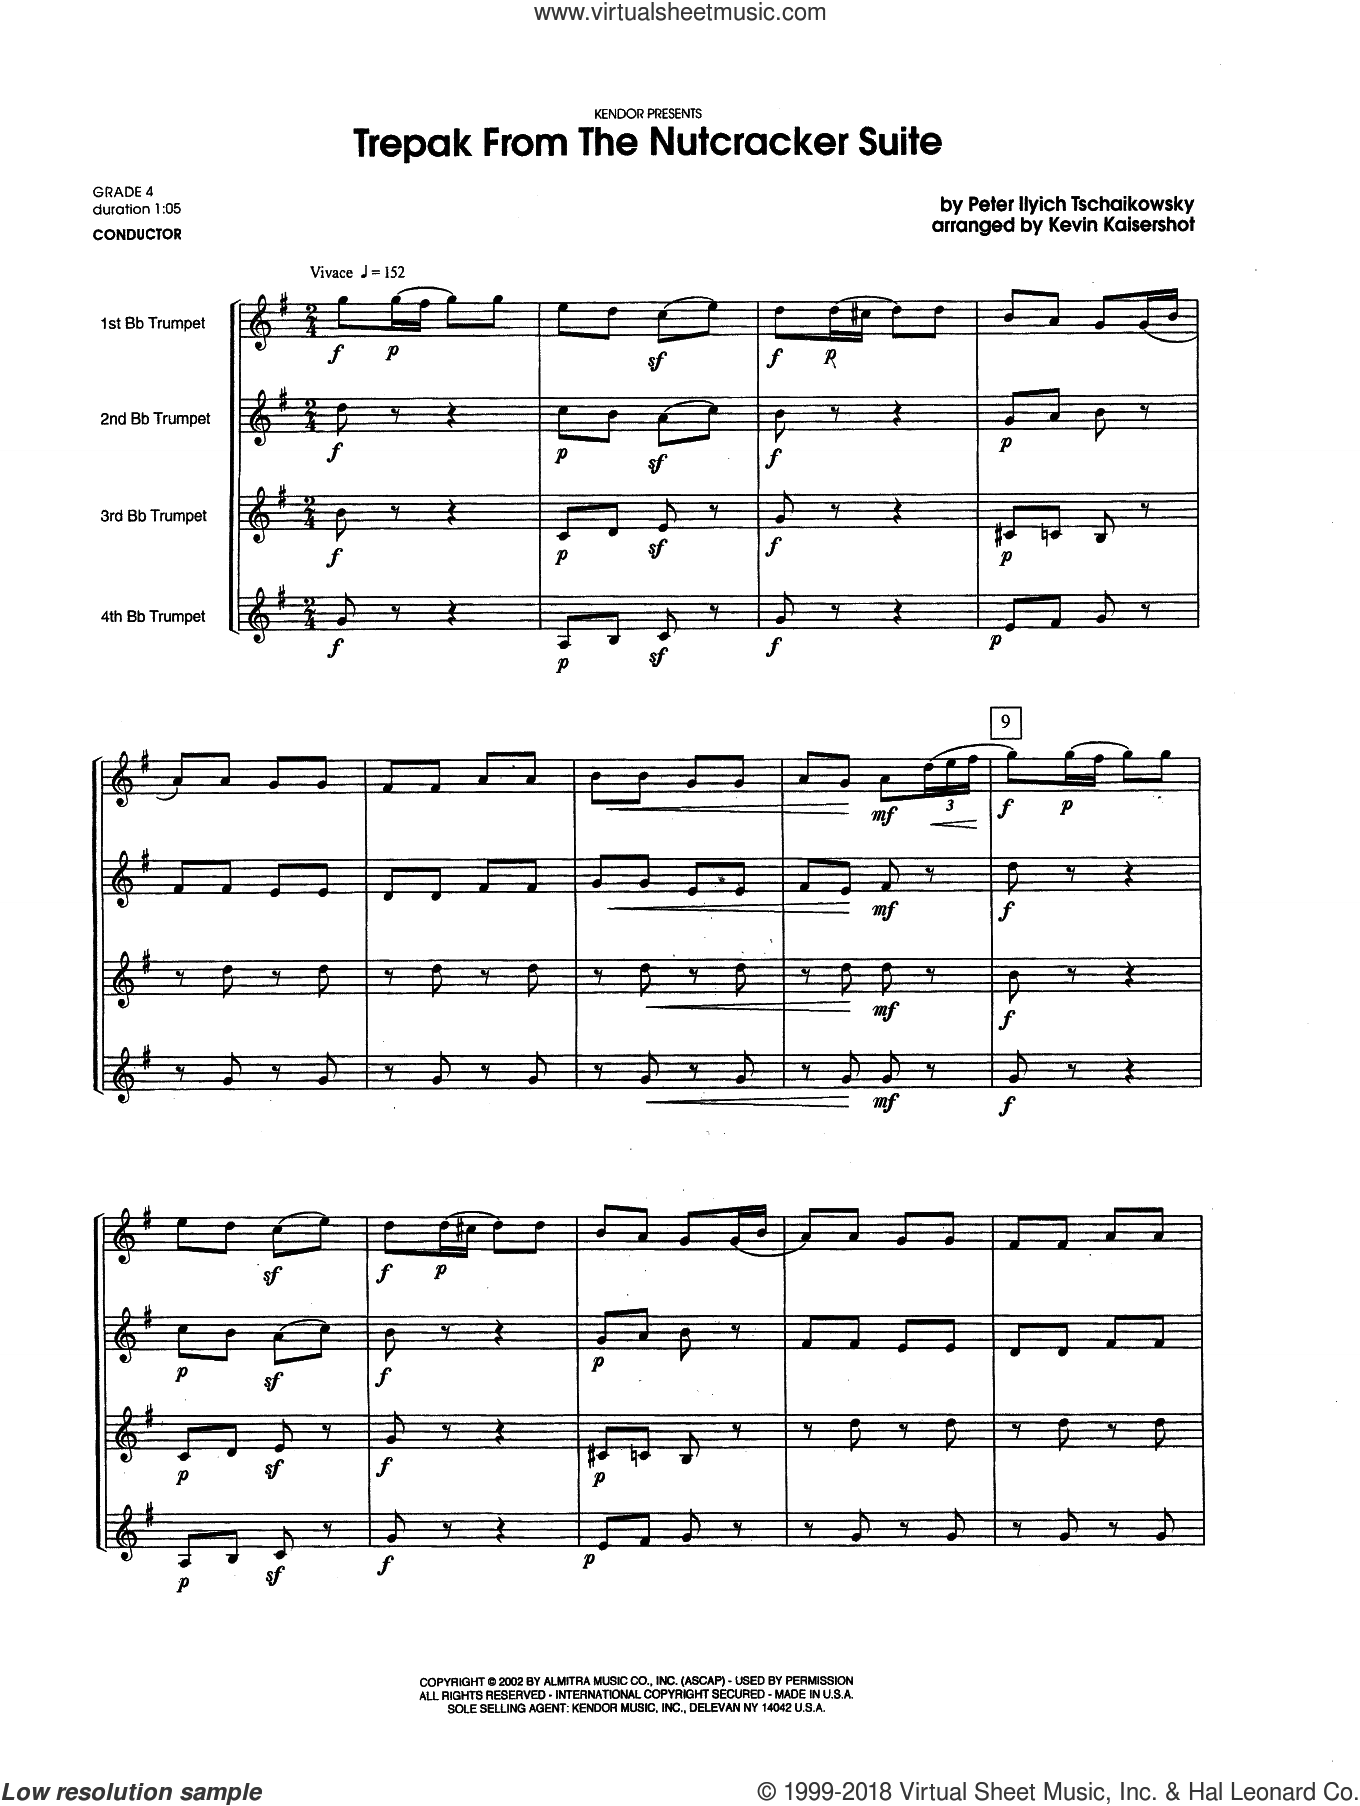 Tchaikovsky Trepak From The Nutcracker Suite Sheet Music Complete Collection For Four Trumpets Sheet Music Nutcracker Music Virtual Sheet Music